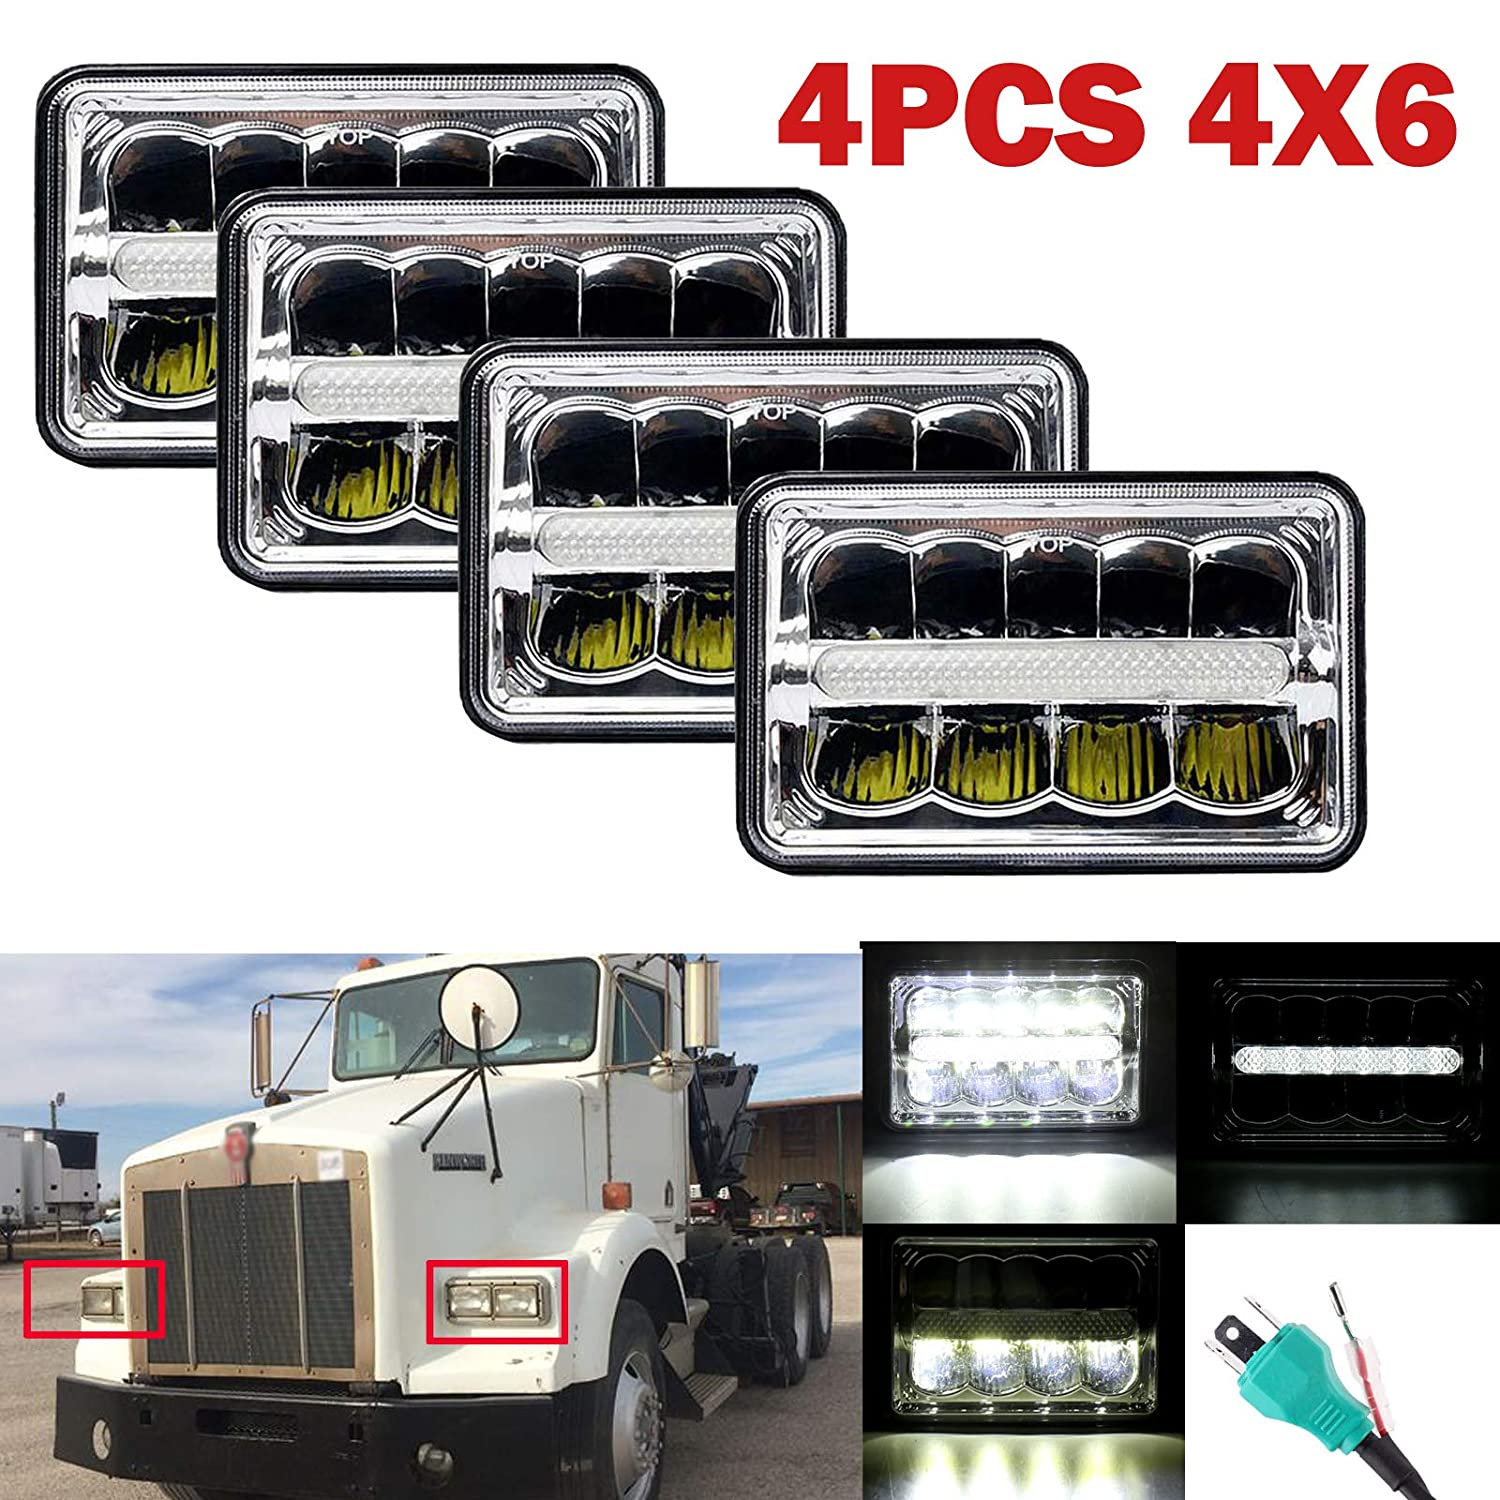 Agricultural Vehicle Parts Pair Of Grey Tractor Headlights Headlamps Outside Grille Fit